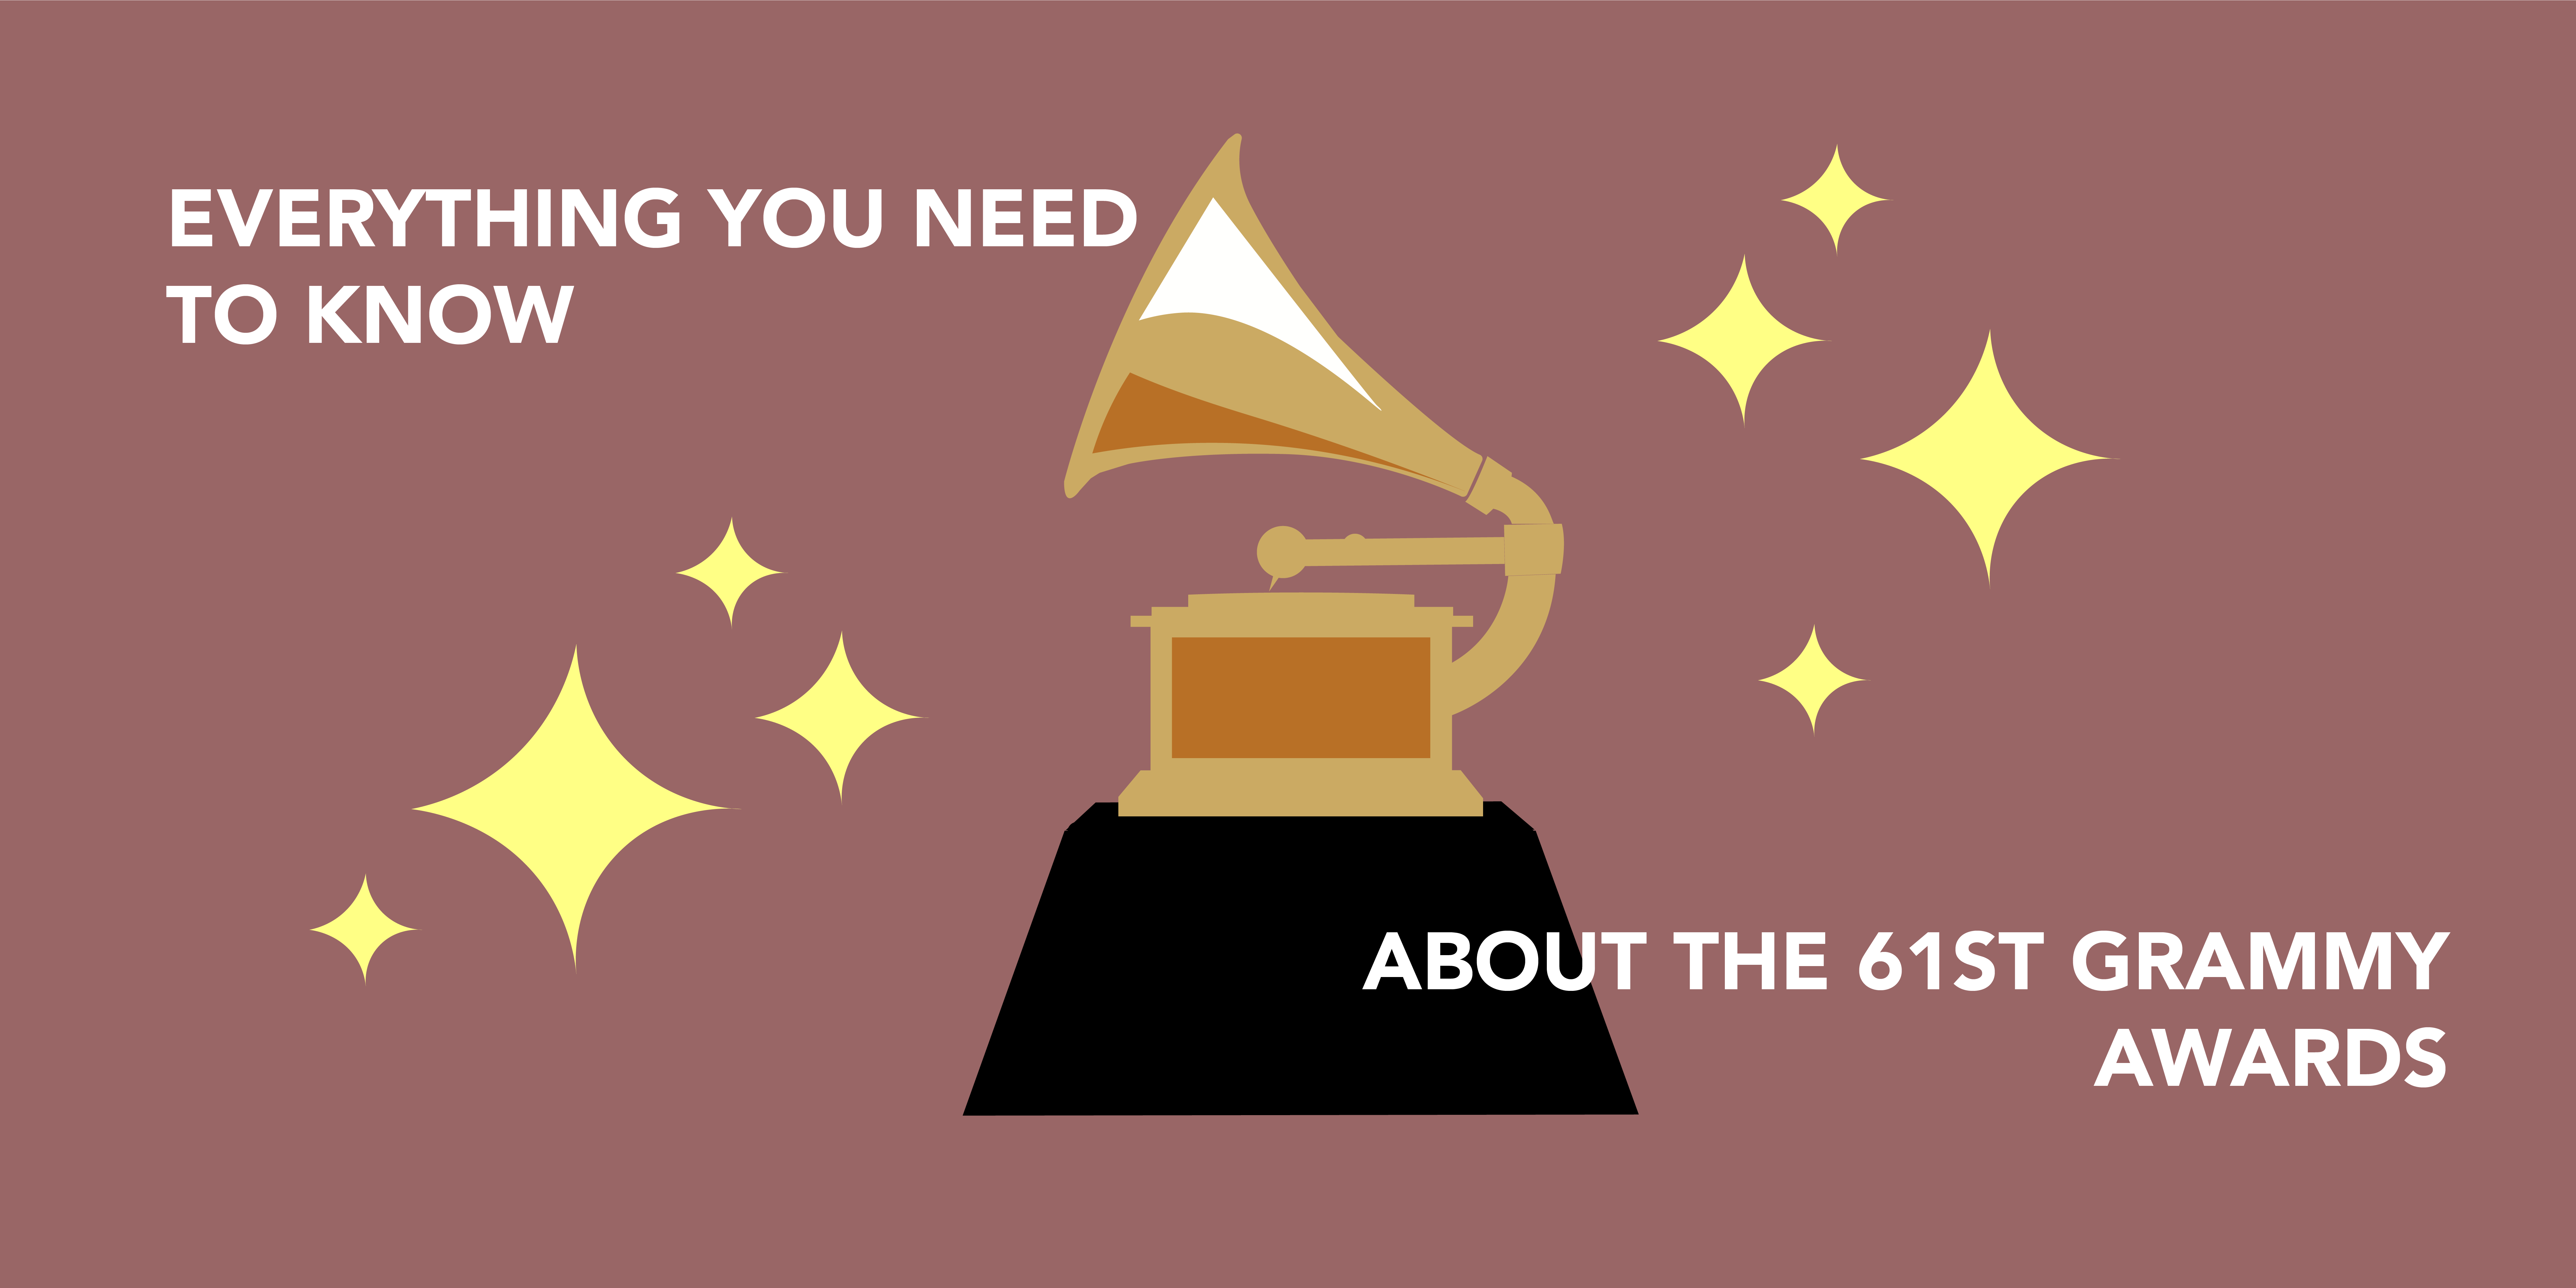 Everything you need to know about the 61st Grammy Awards